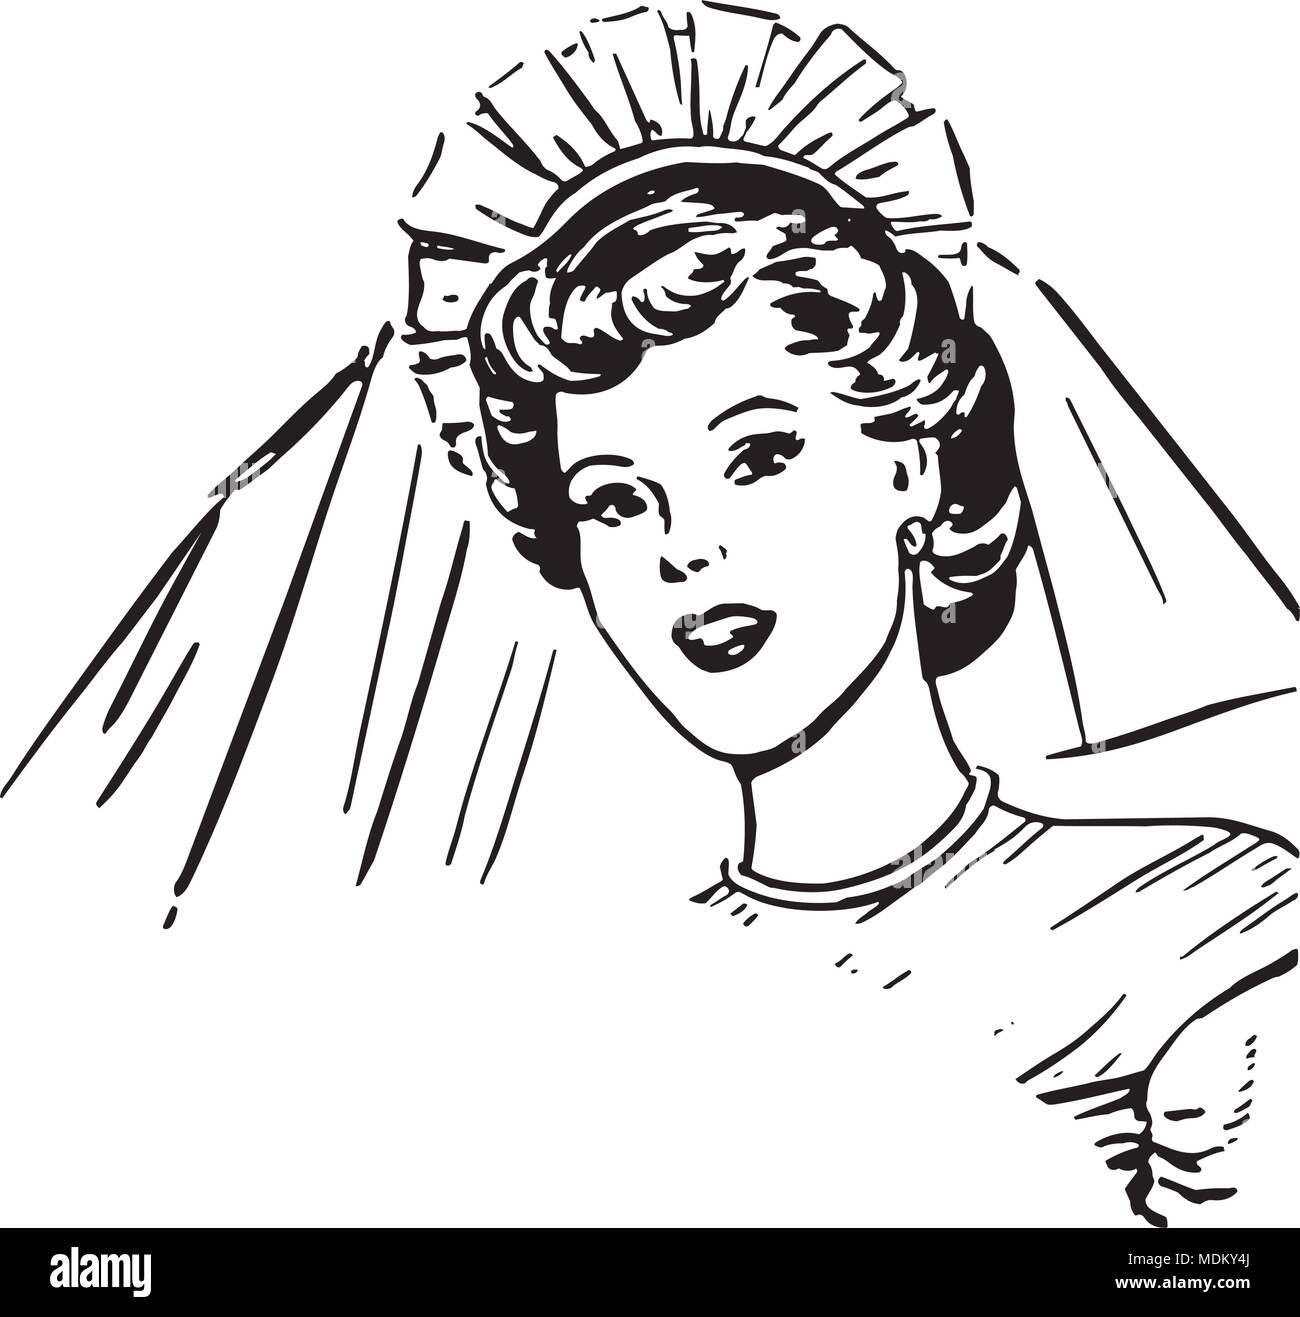 hight resolution of bride retro clipart illustration